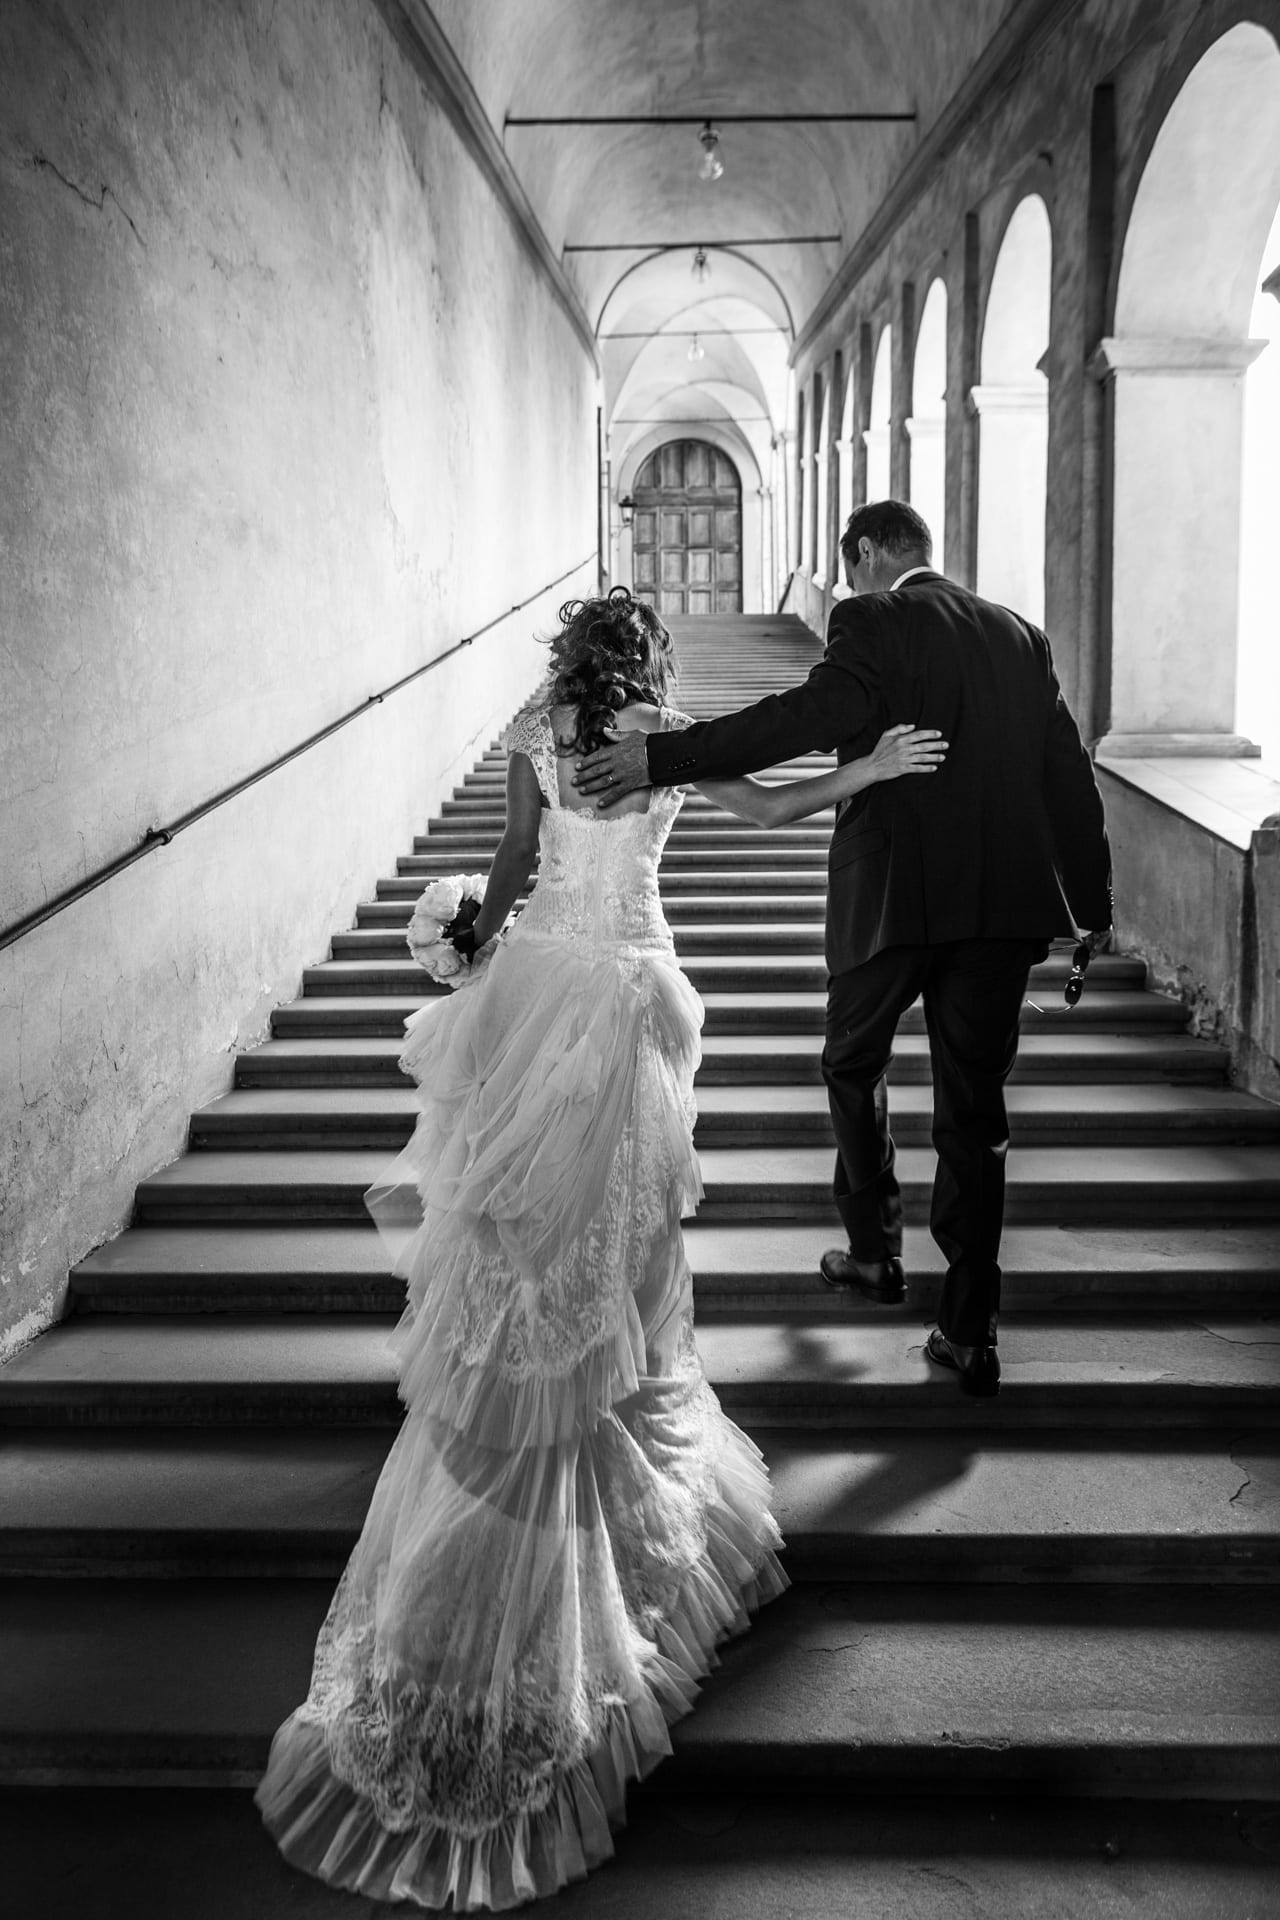 https://s3-eu-central-1.amazonaws.com/righiphotography-com/wp-content/uploads/2020/02/02183207/Wedding-Photo-No-Pose-Studio-Fotografico-Righi-RIGHI-14.jpg